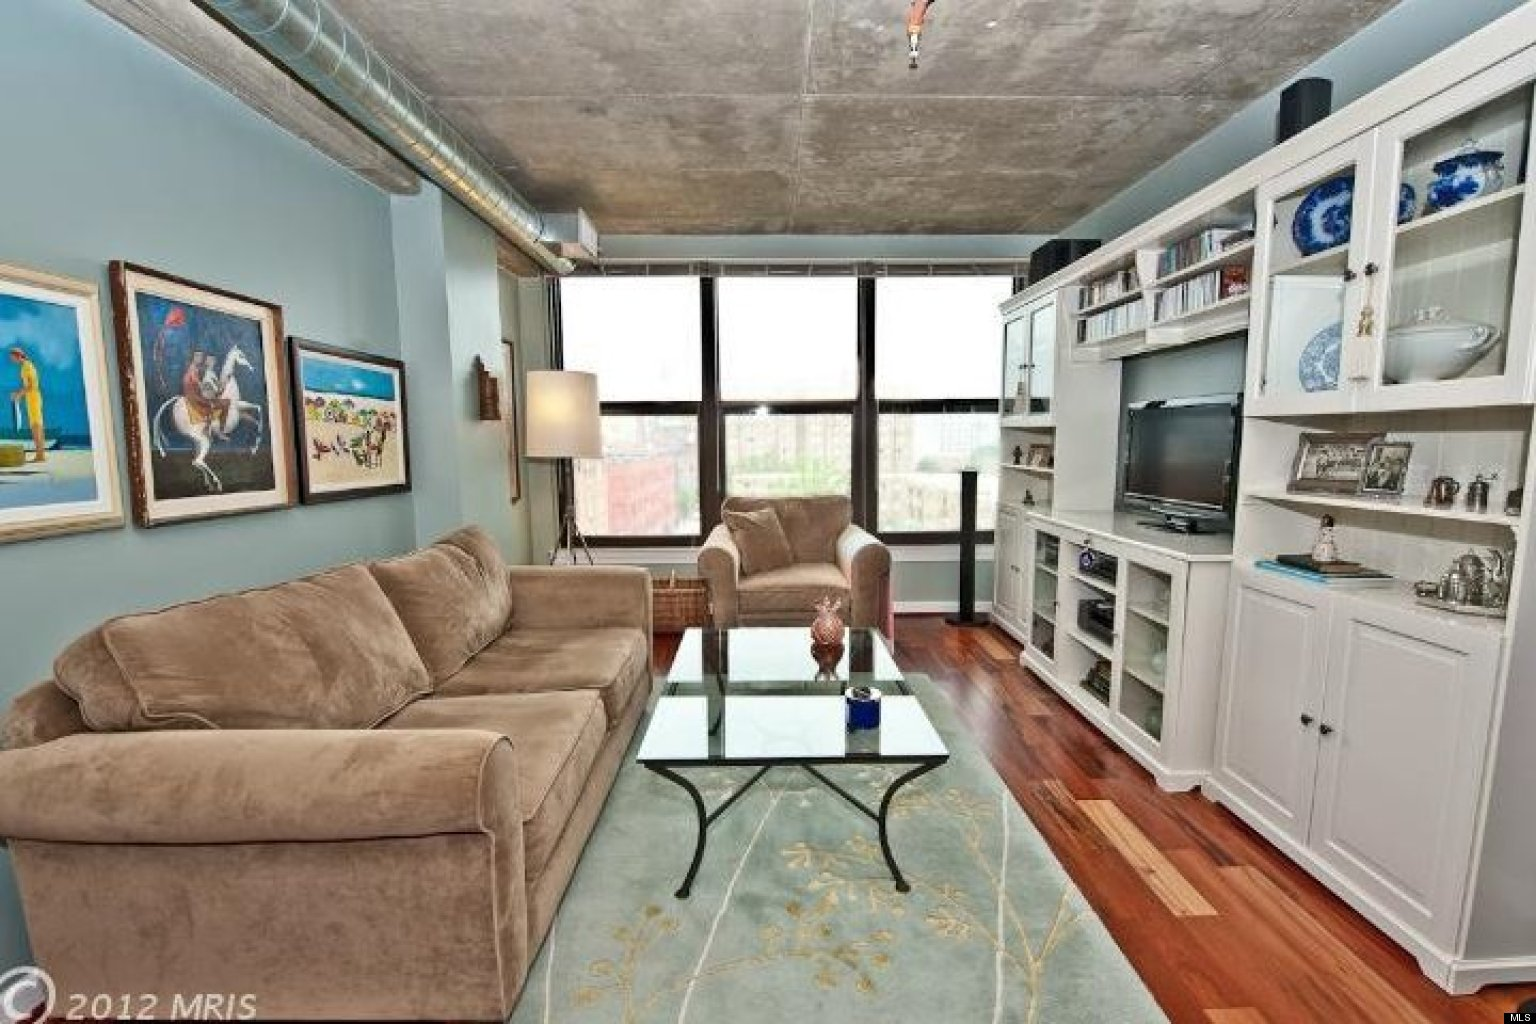 D c real estate tiny condos and houses for sale photos - 2 bedroom apartments in dc under 1000 ...